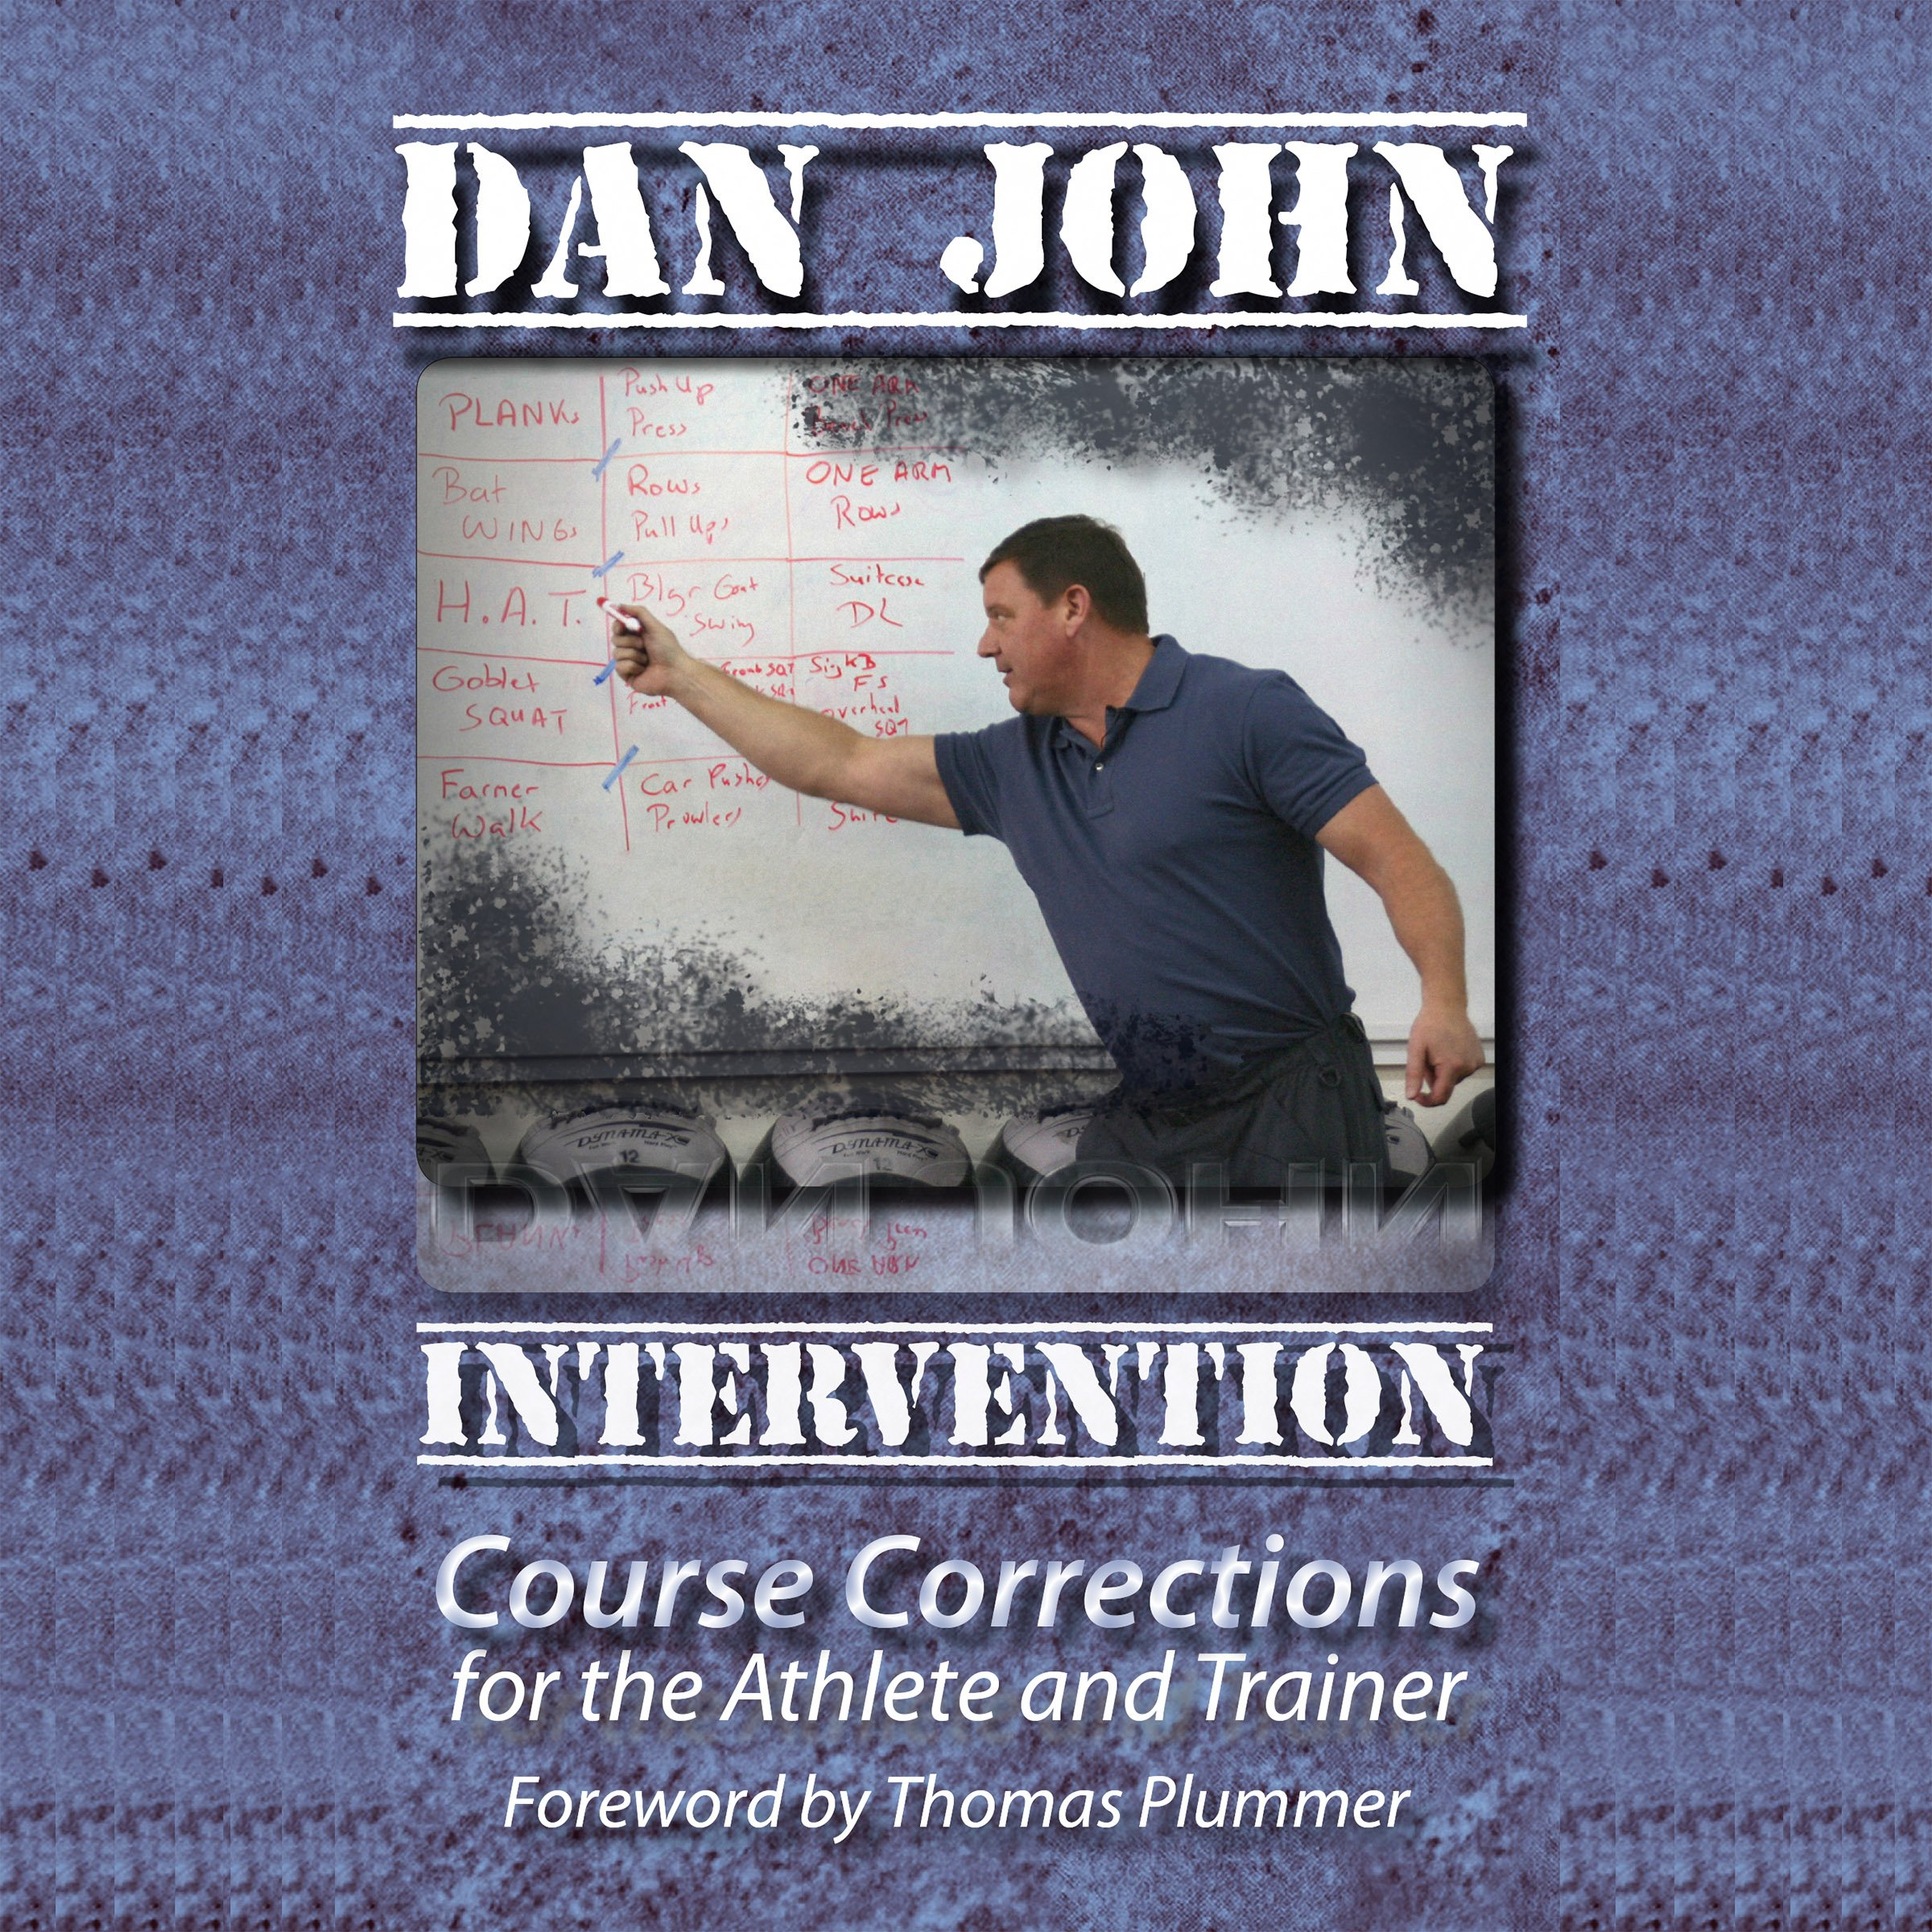 Image OfIntervention: Course Corrections For The Athlete And Trainer